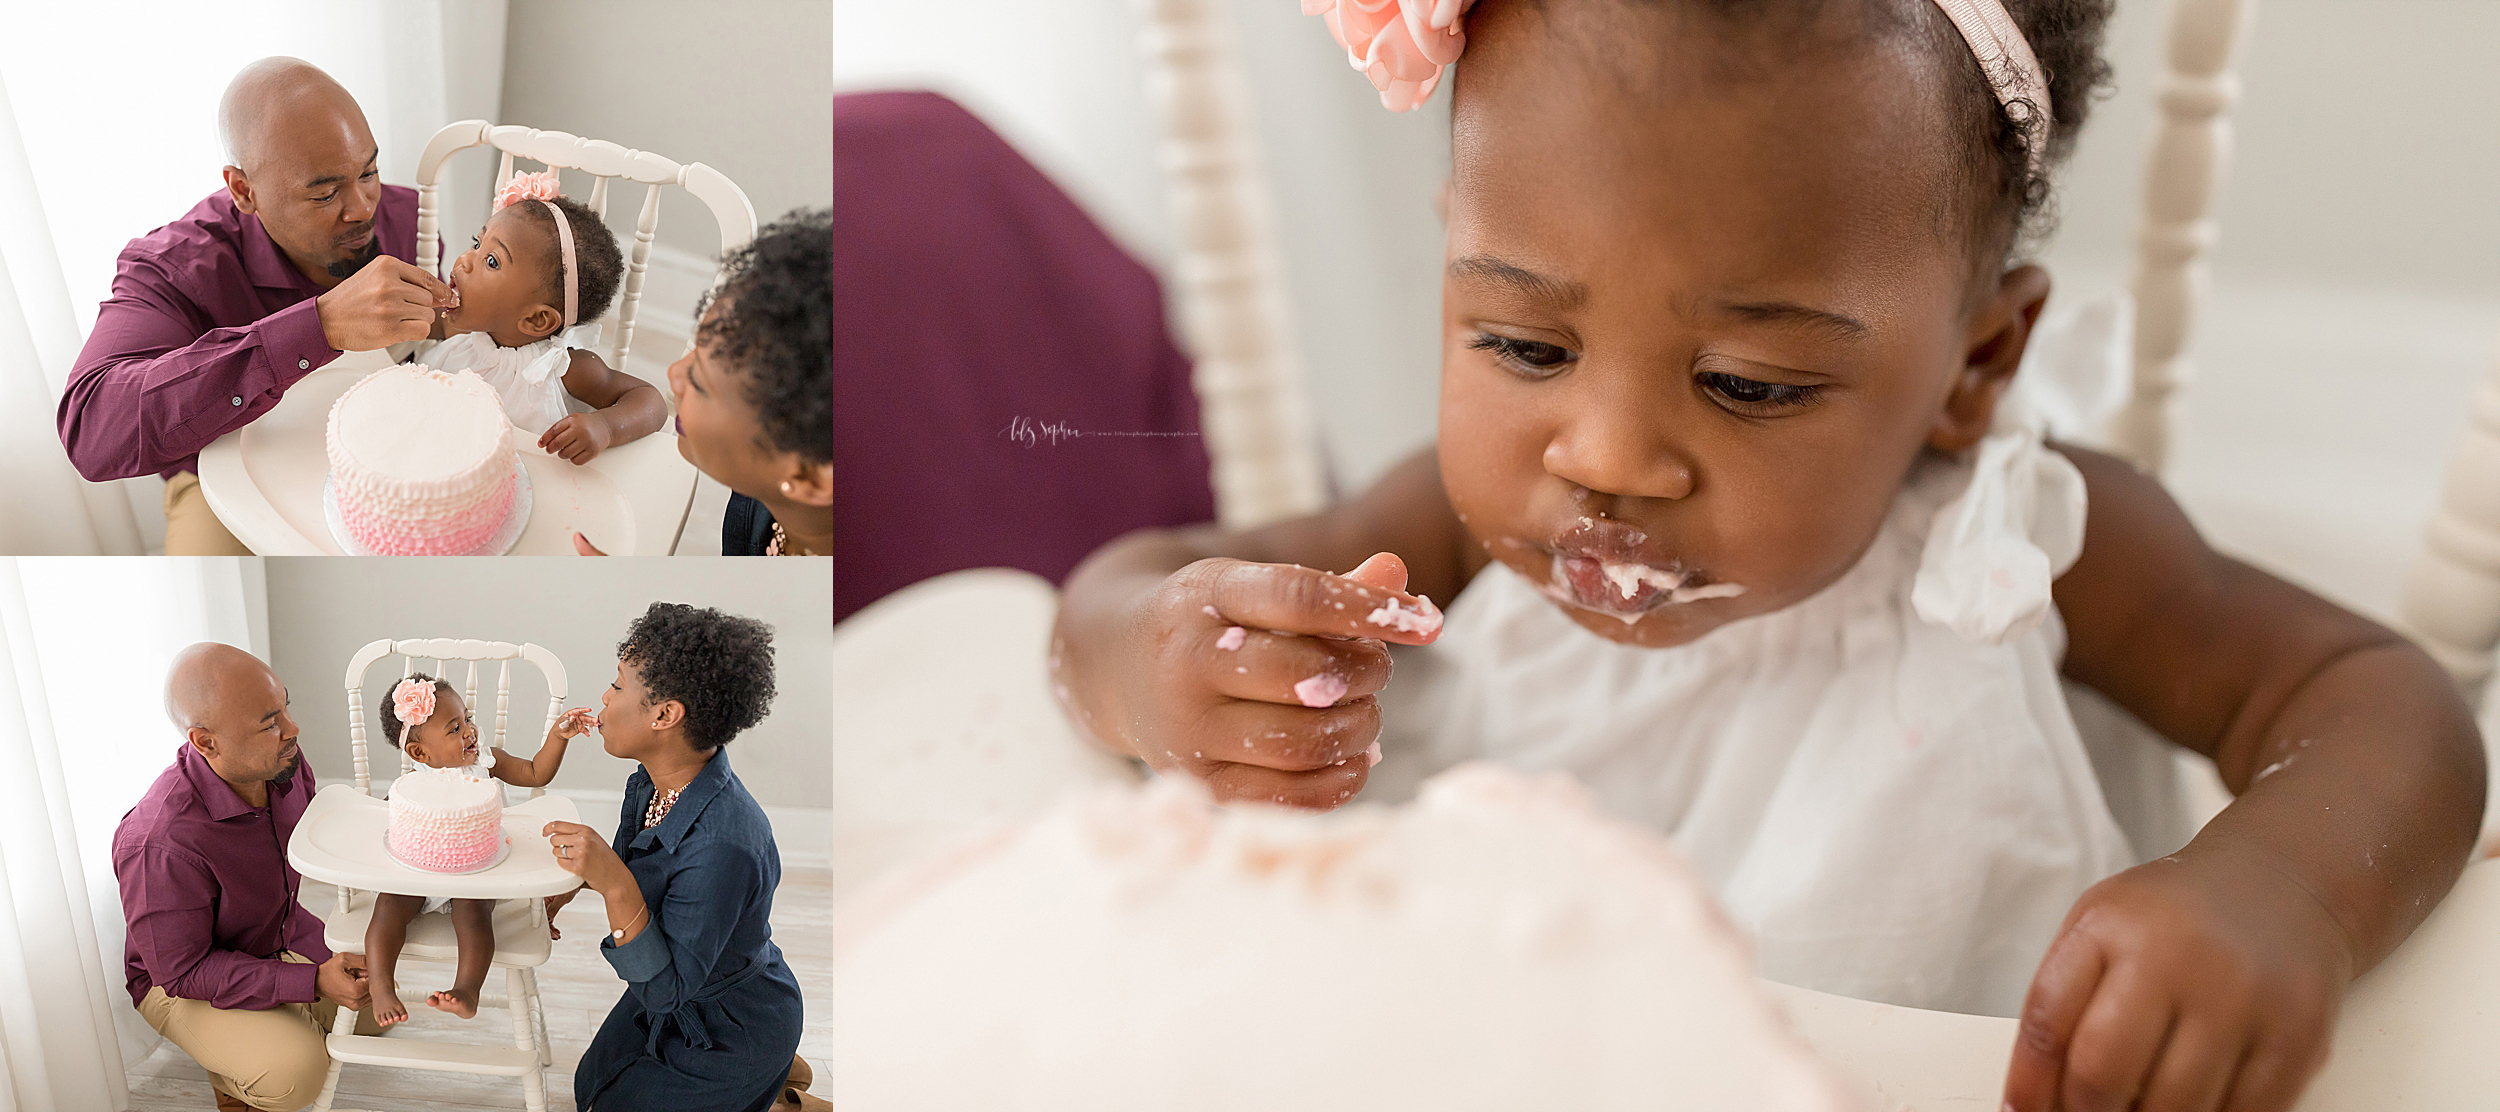 atlanta-smyrna-brookhaven-decatur-lily-sophia-photography-photographer-portraits-grant-park-intown-first-birthday-cake-smash-one-year-old-toddler-baby-girl_0022.jpg